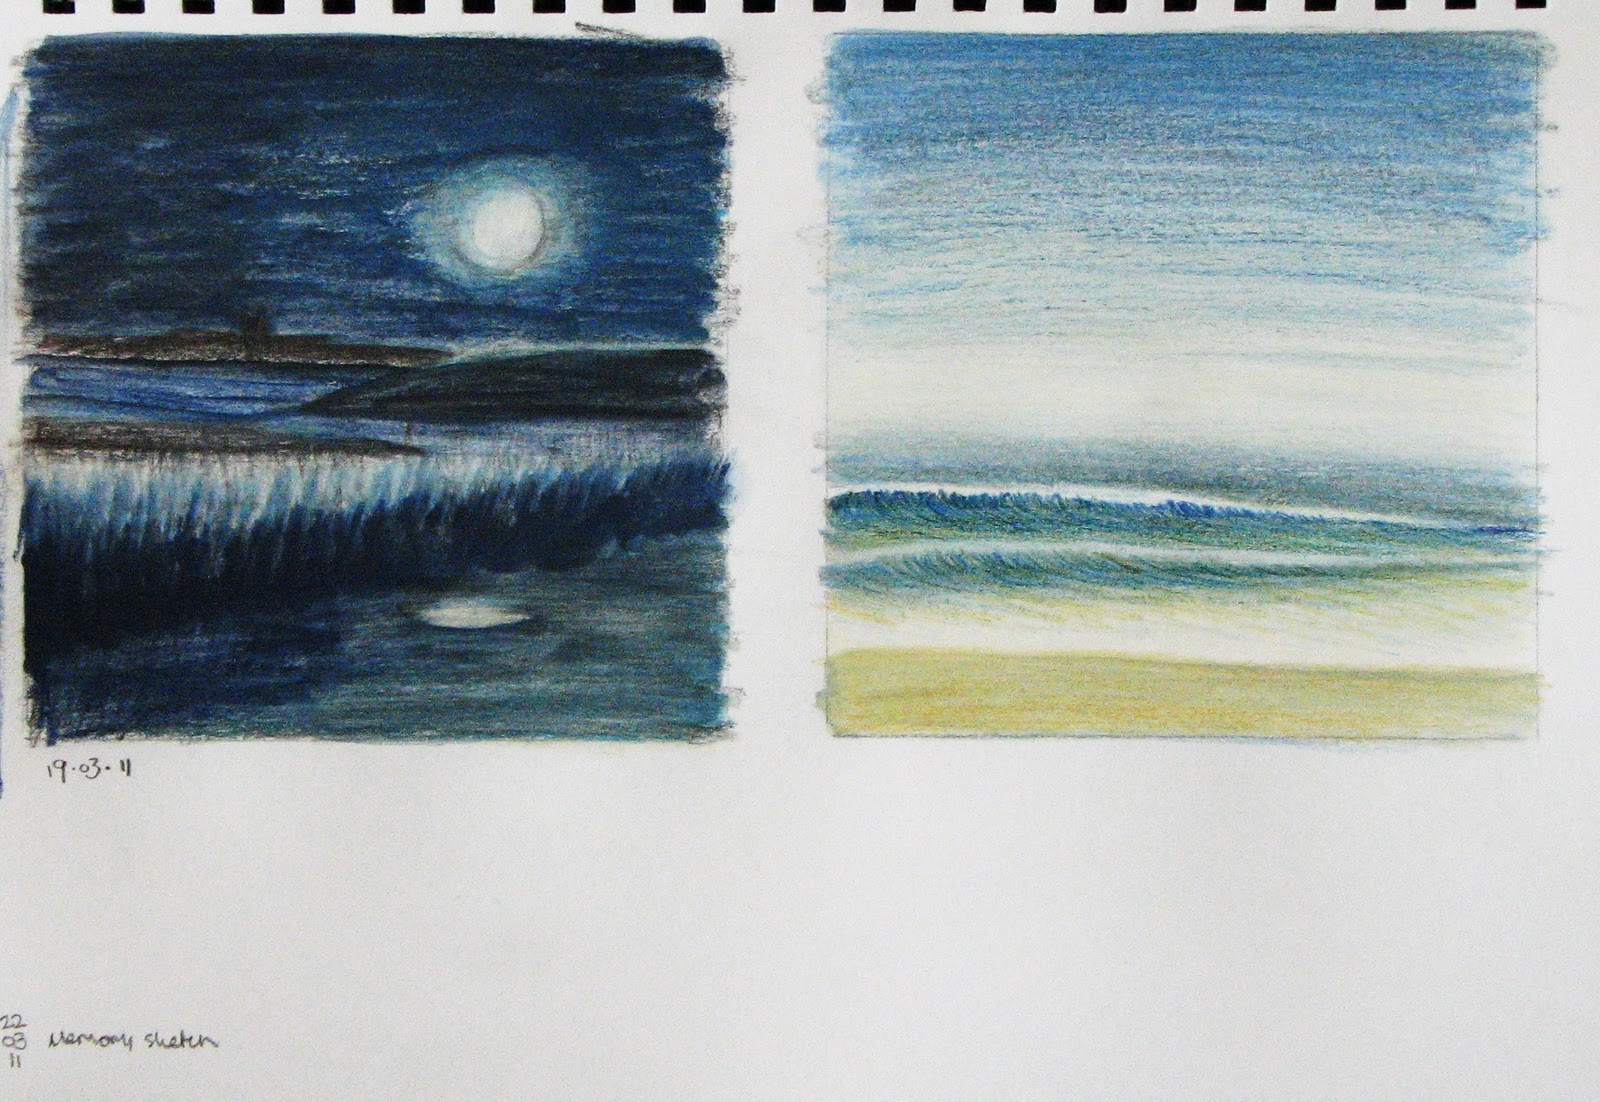 Lisa Le Quelenec Seaside Studios Paintings, Prints And Mixed Media: Sketchbook Ideas And Colour